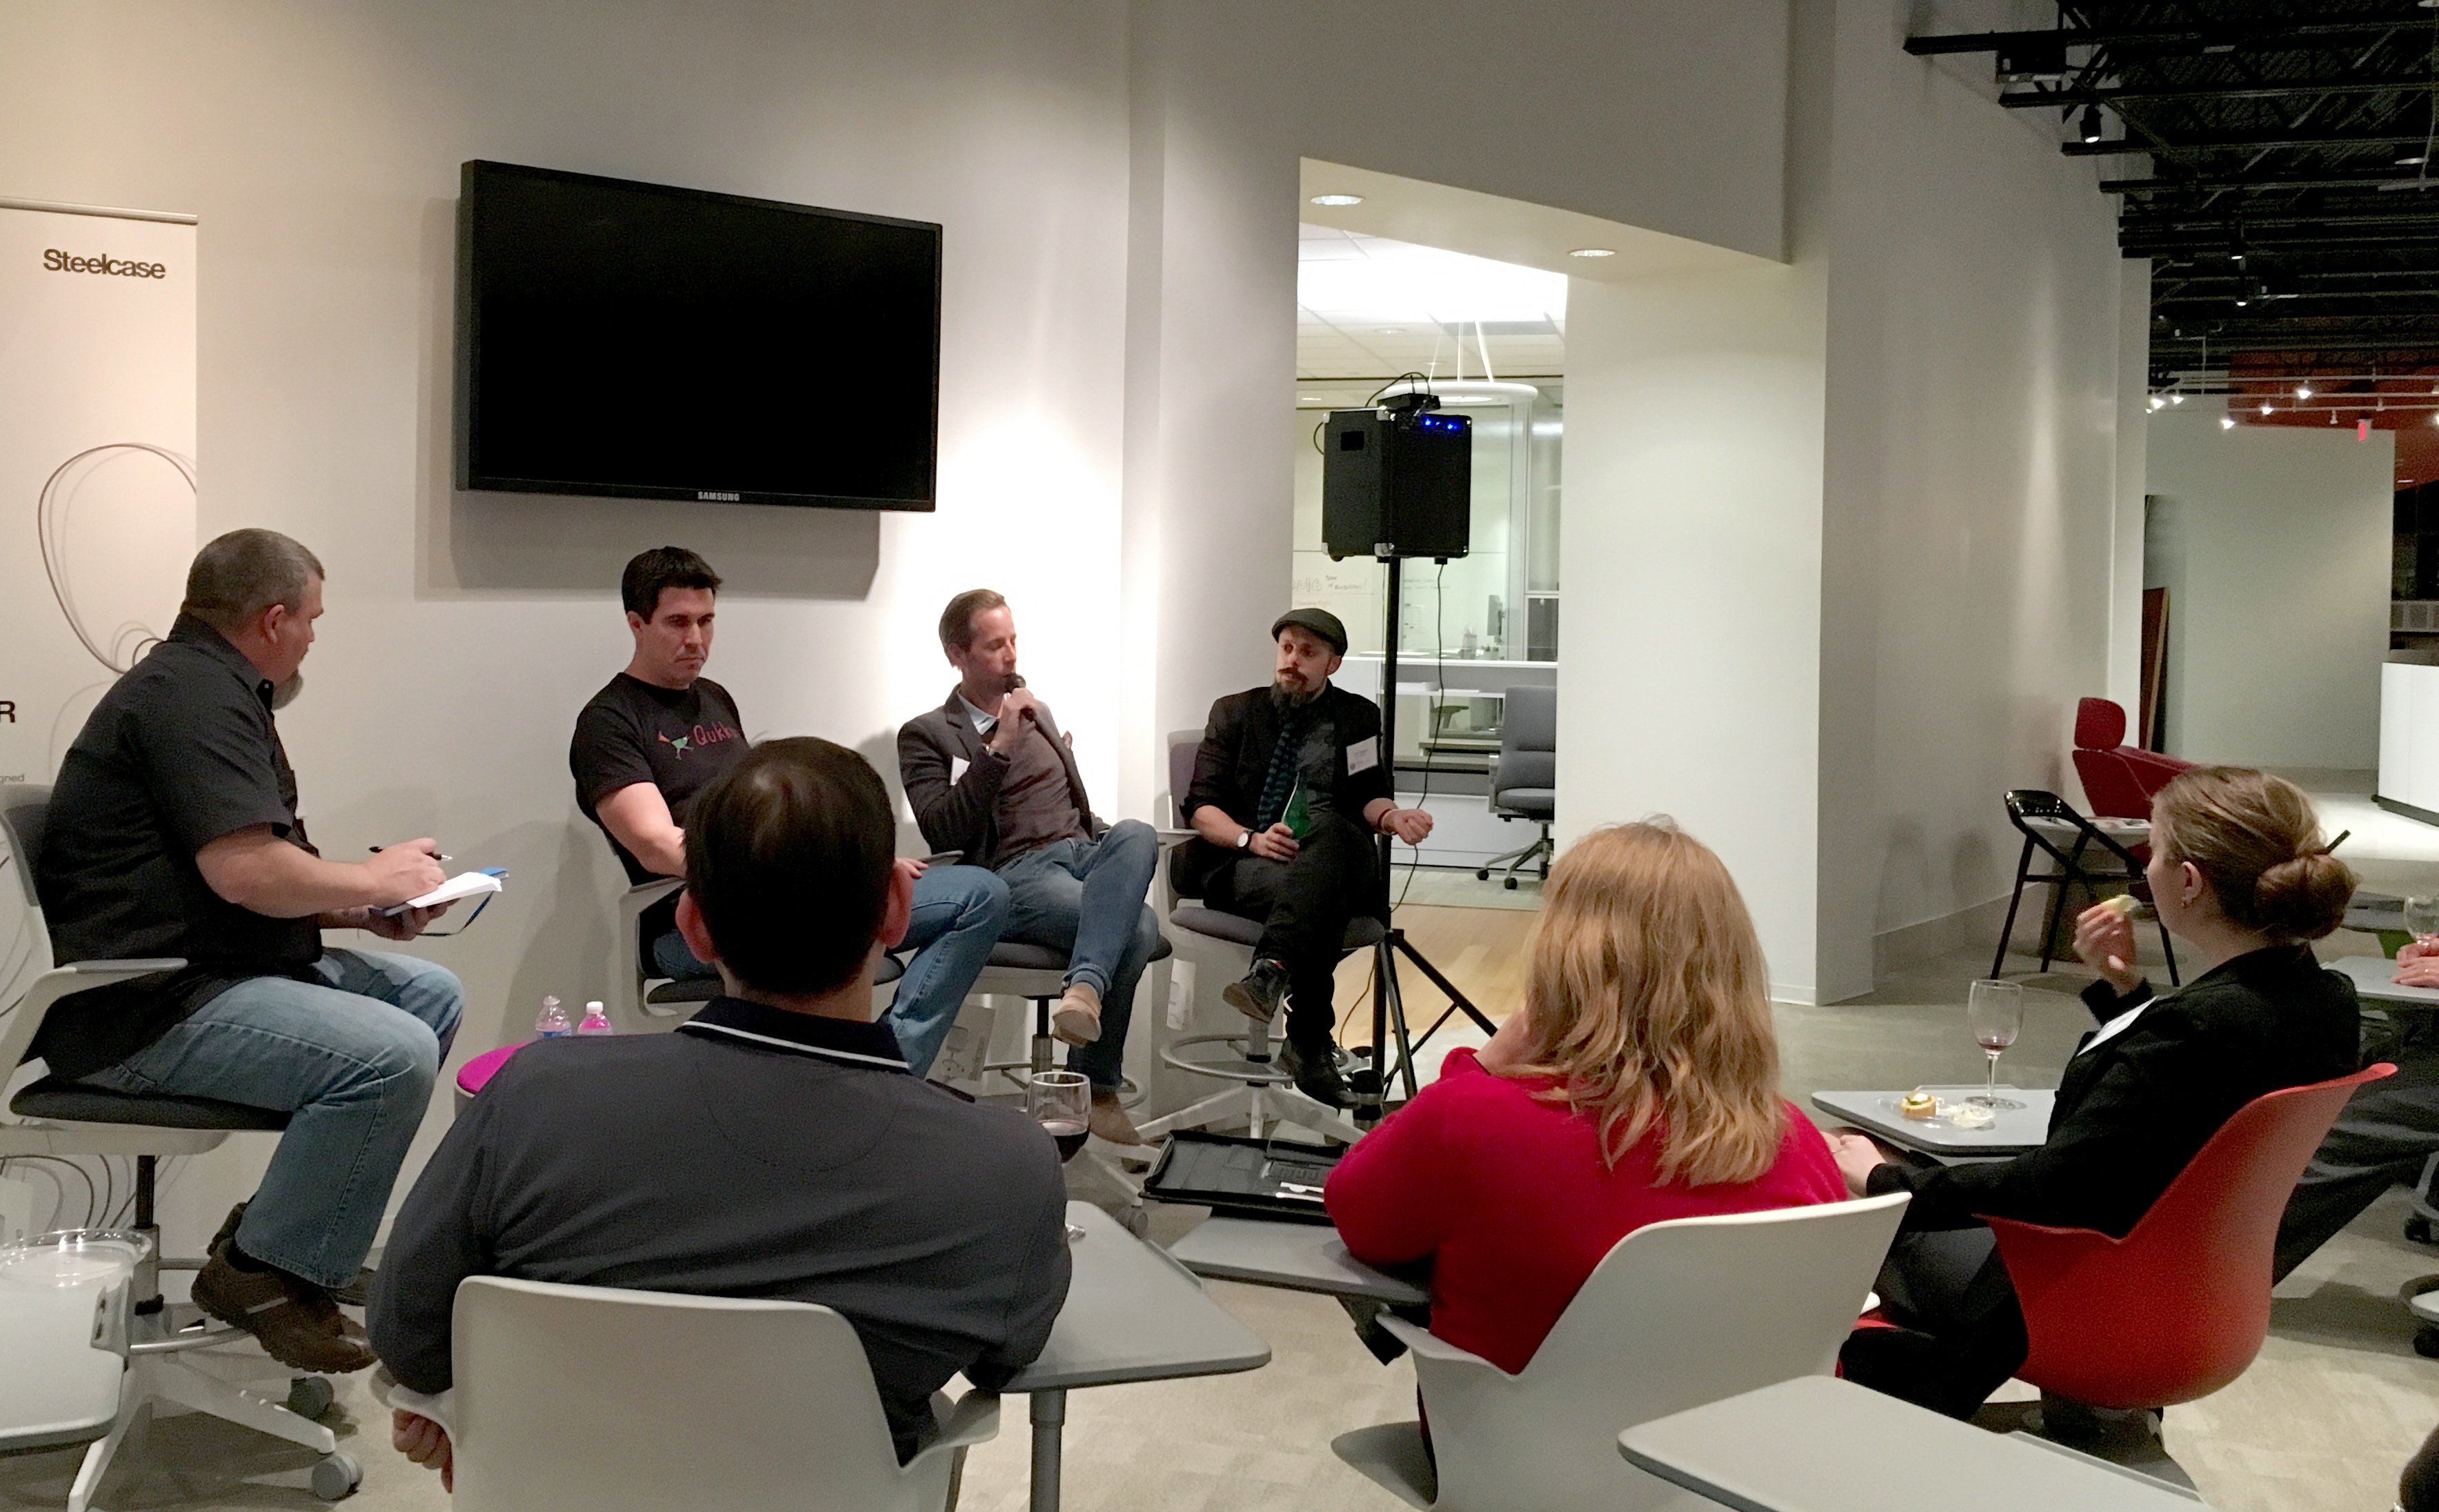 StartUp Culture: An Evening with 3 Founders